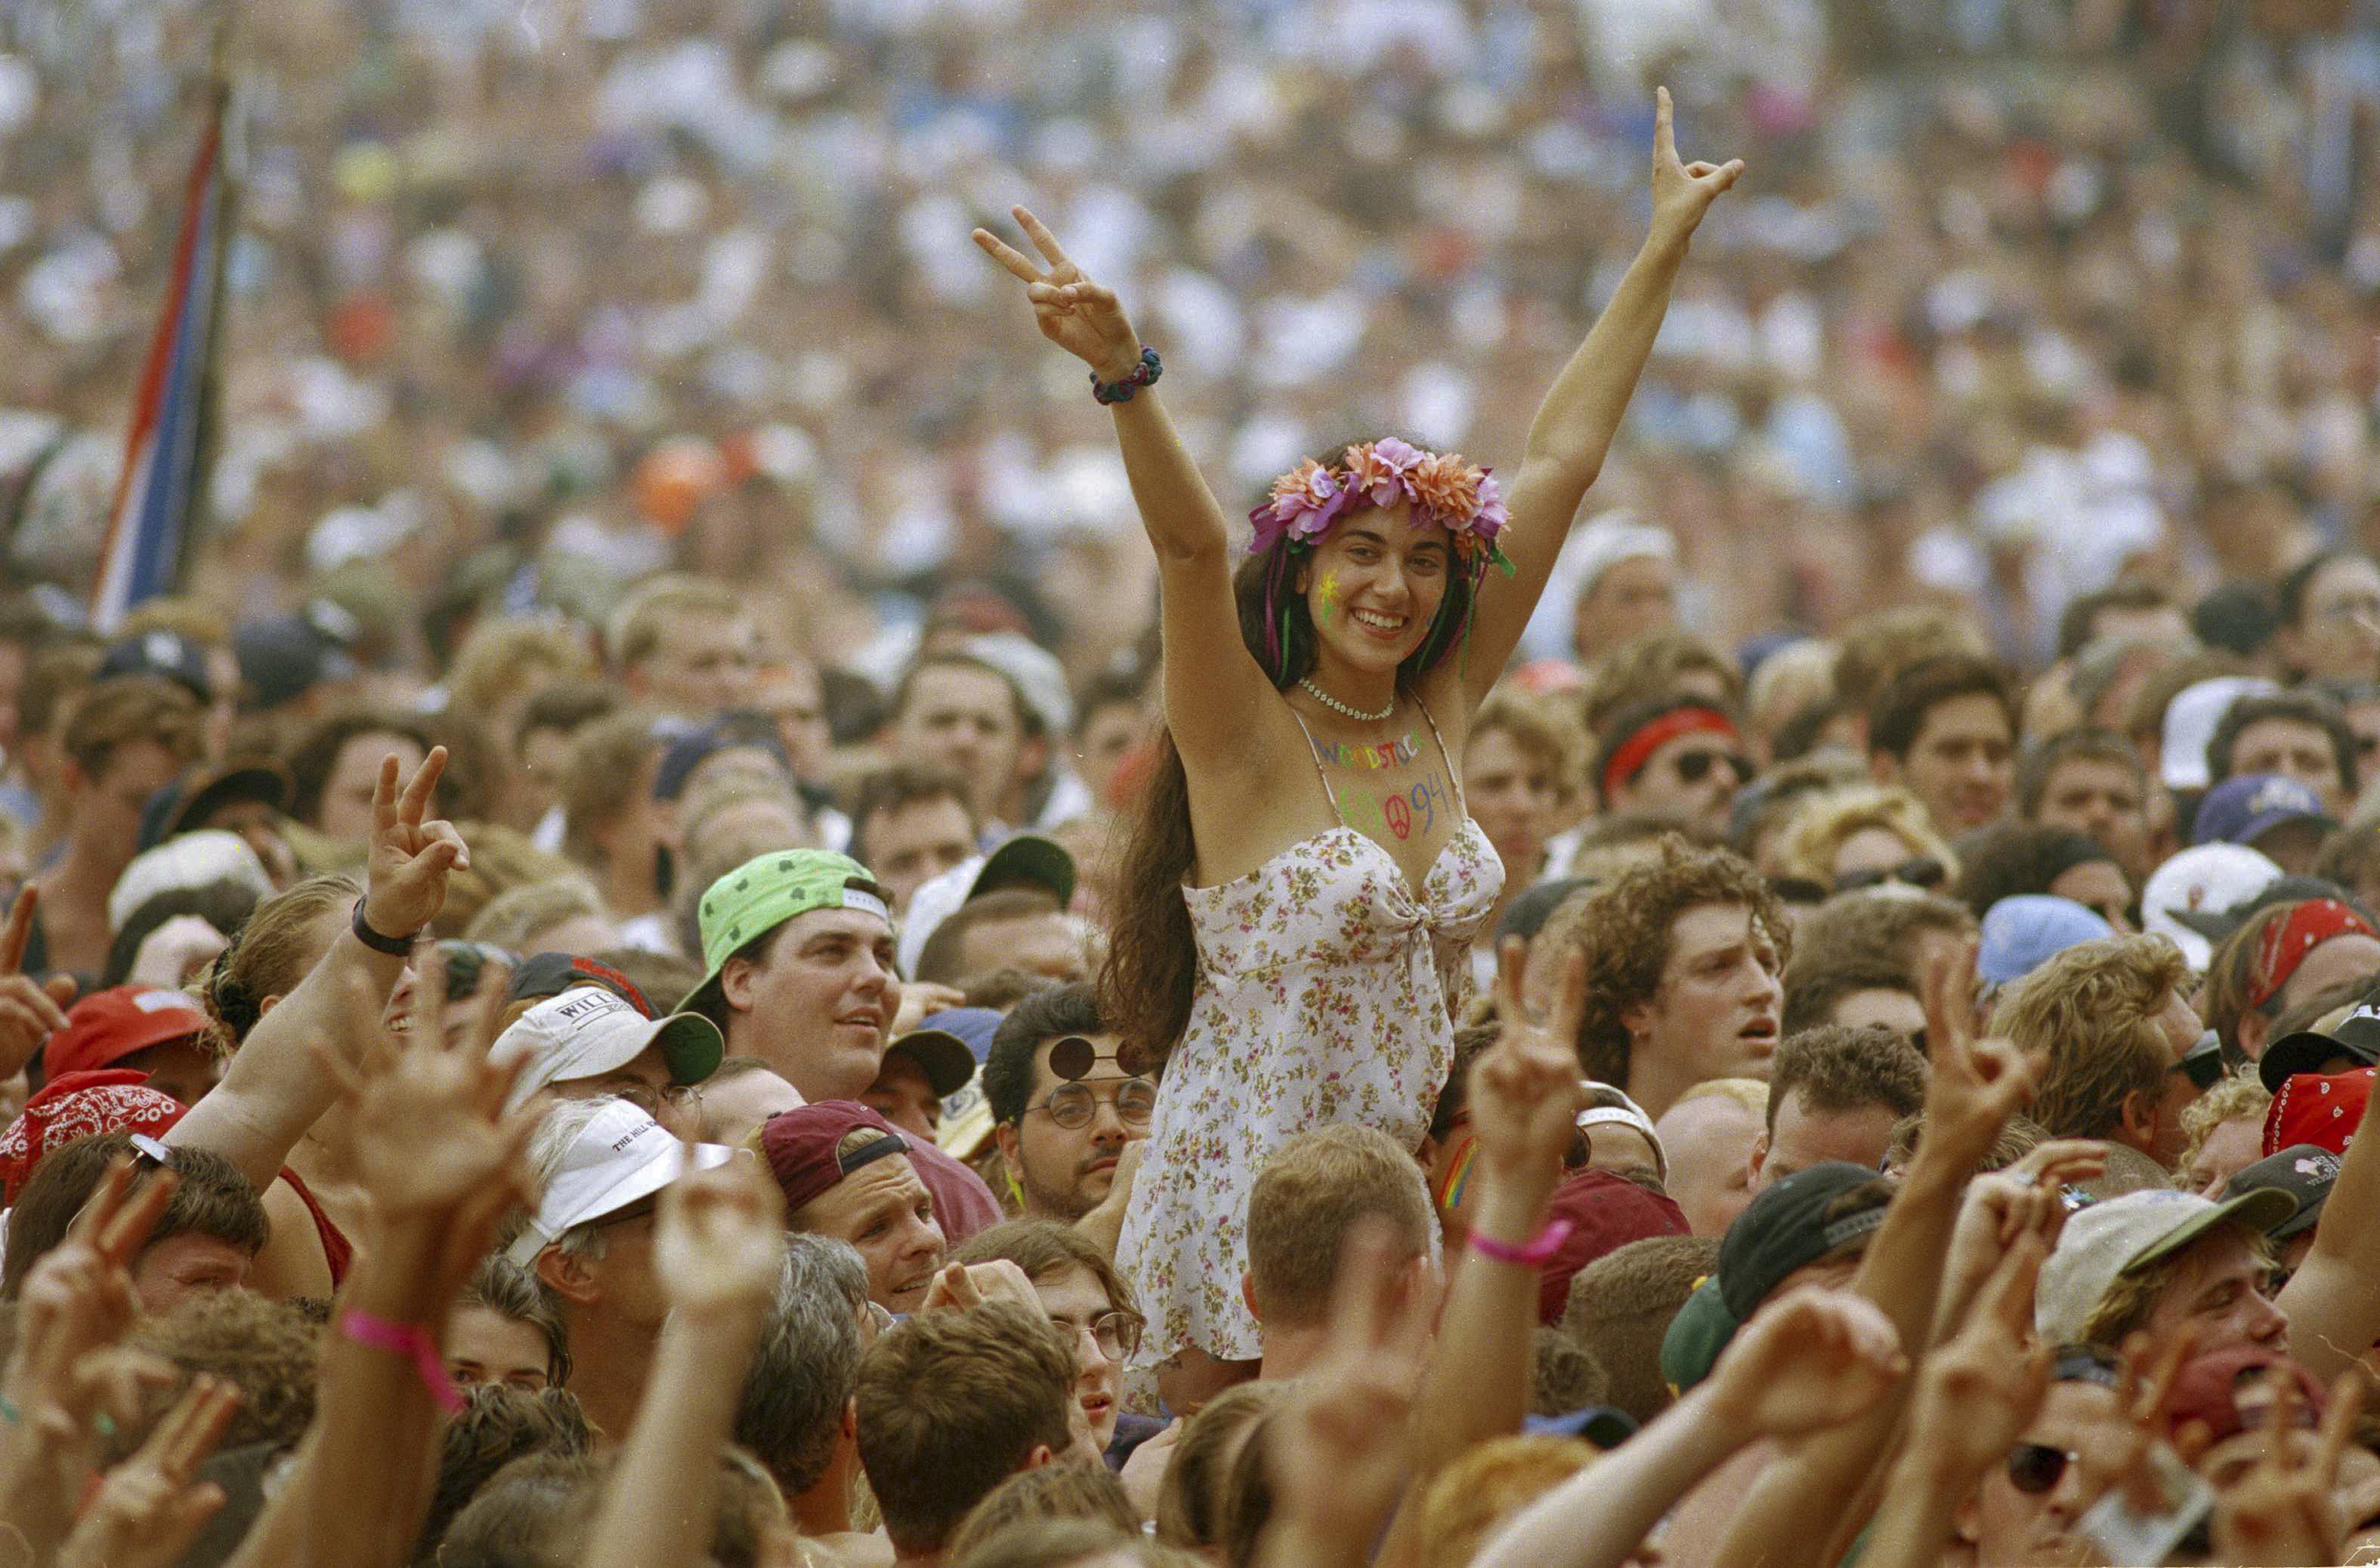 Woodstock 2019: How to get tickets for the 50th anniversary concert festival